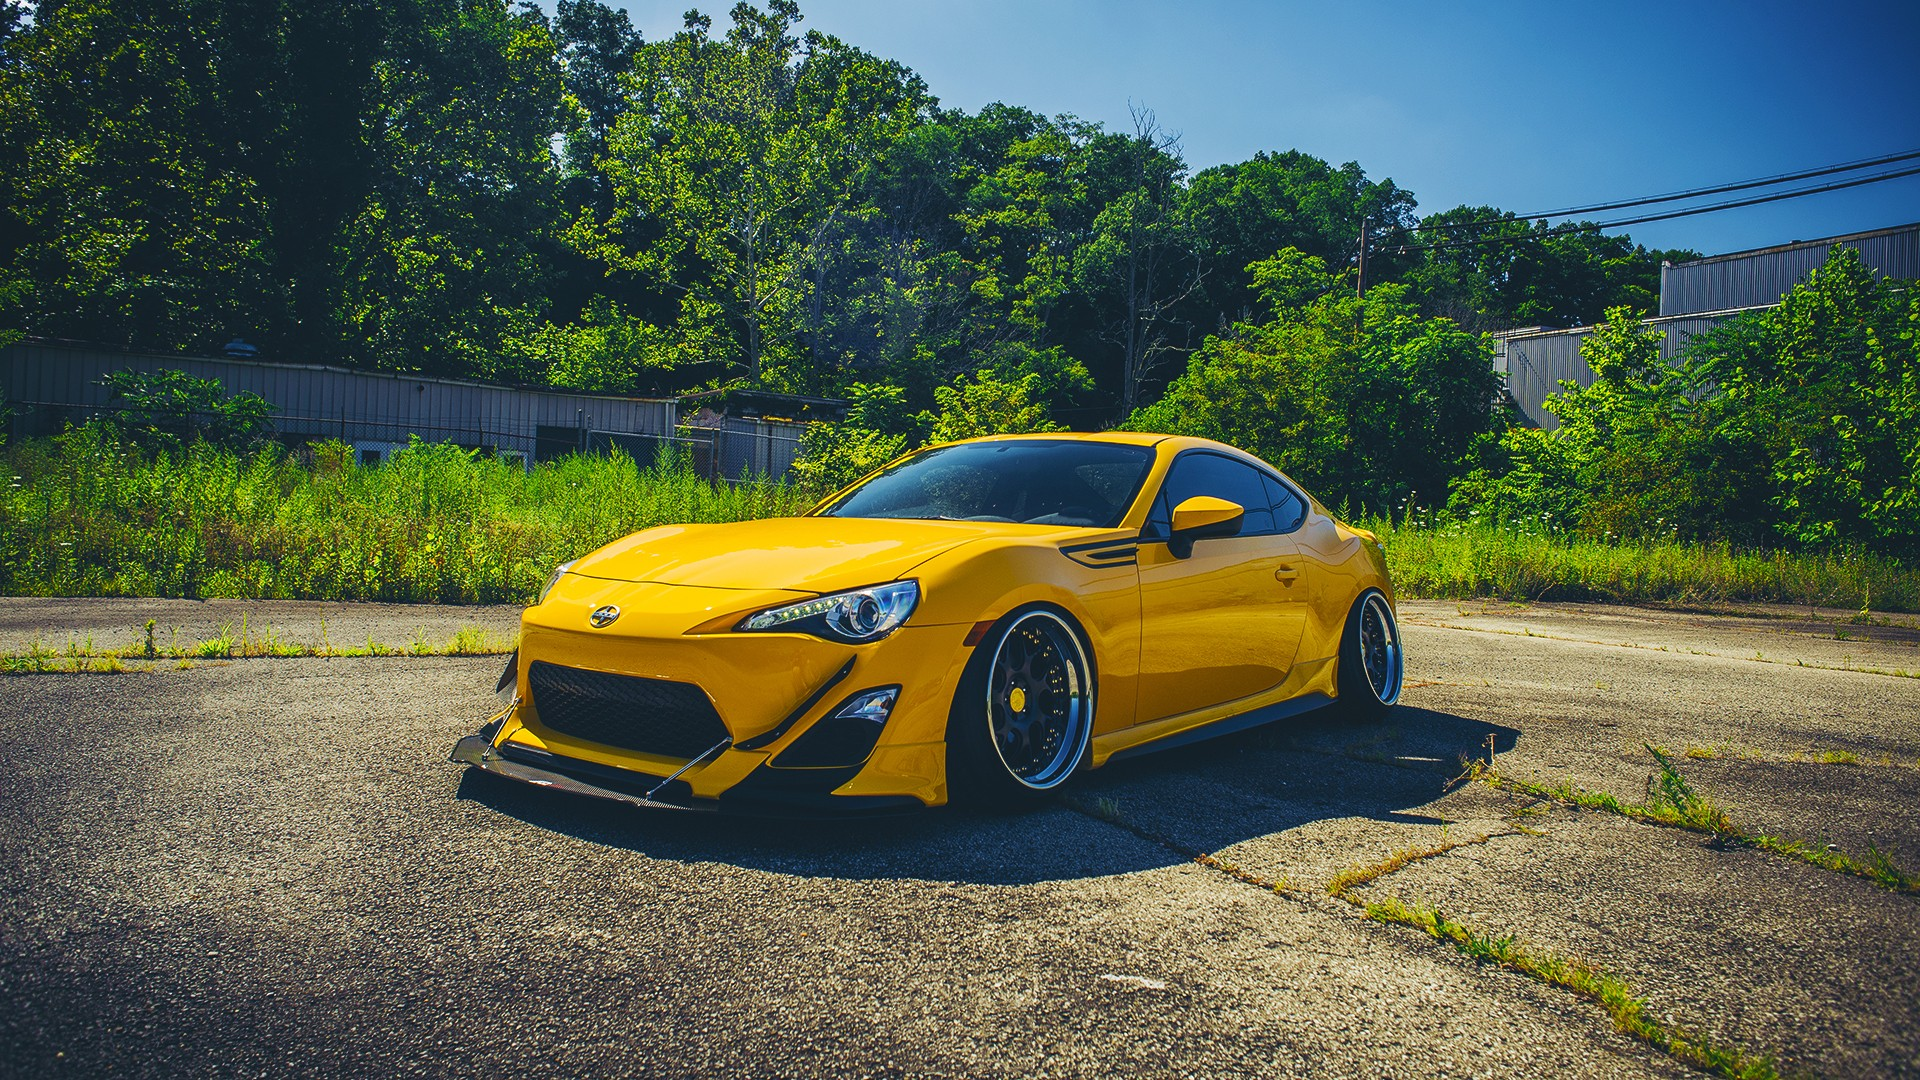 Cars Hd Wallpapers 1080p For Pc Bmw Scion Frs Stance Wallpaper Hd Car Wallpapers Id 5667